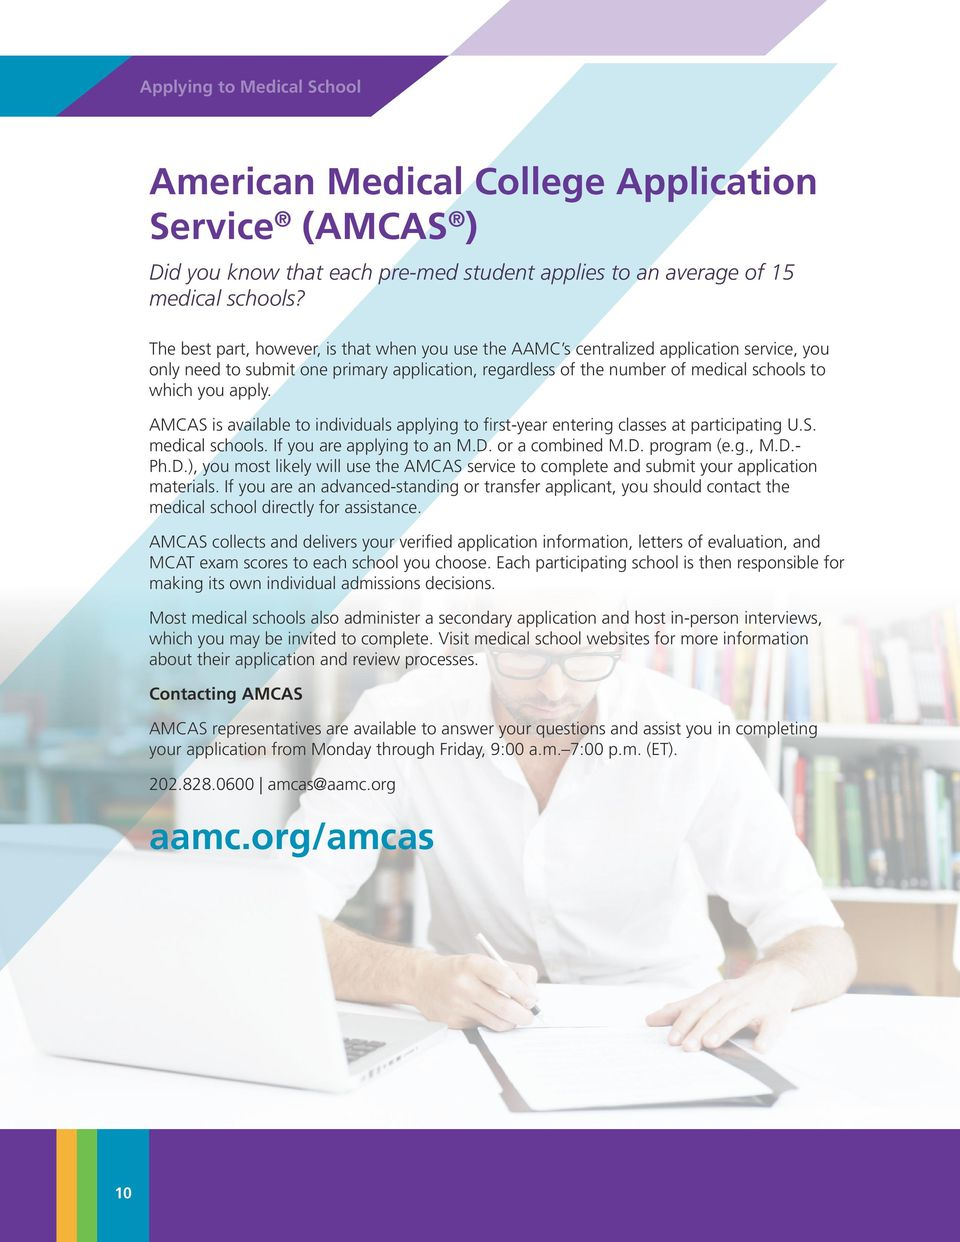 apply. AMCAS is available to individuals applying to first-year entering classes at participating U.S. medical schools. If you are applying to an M.D.